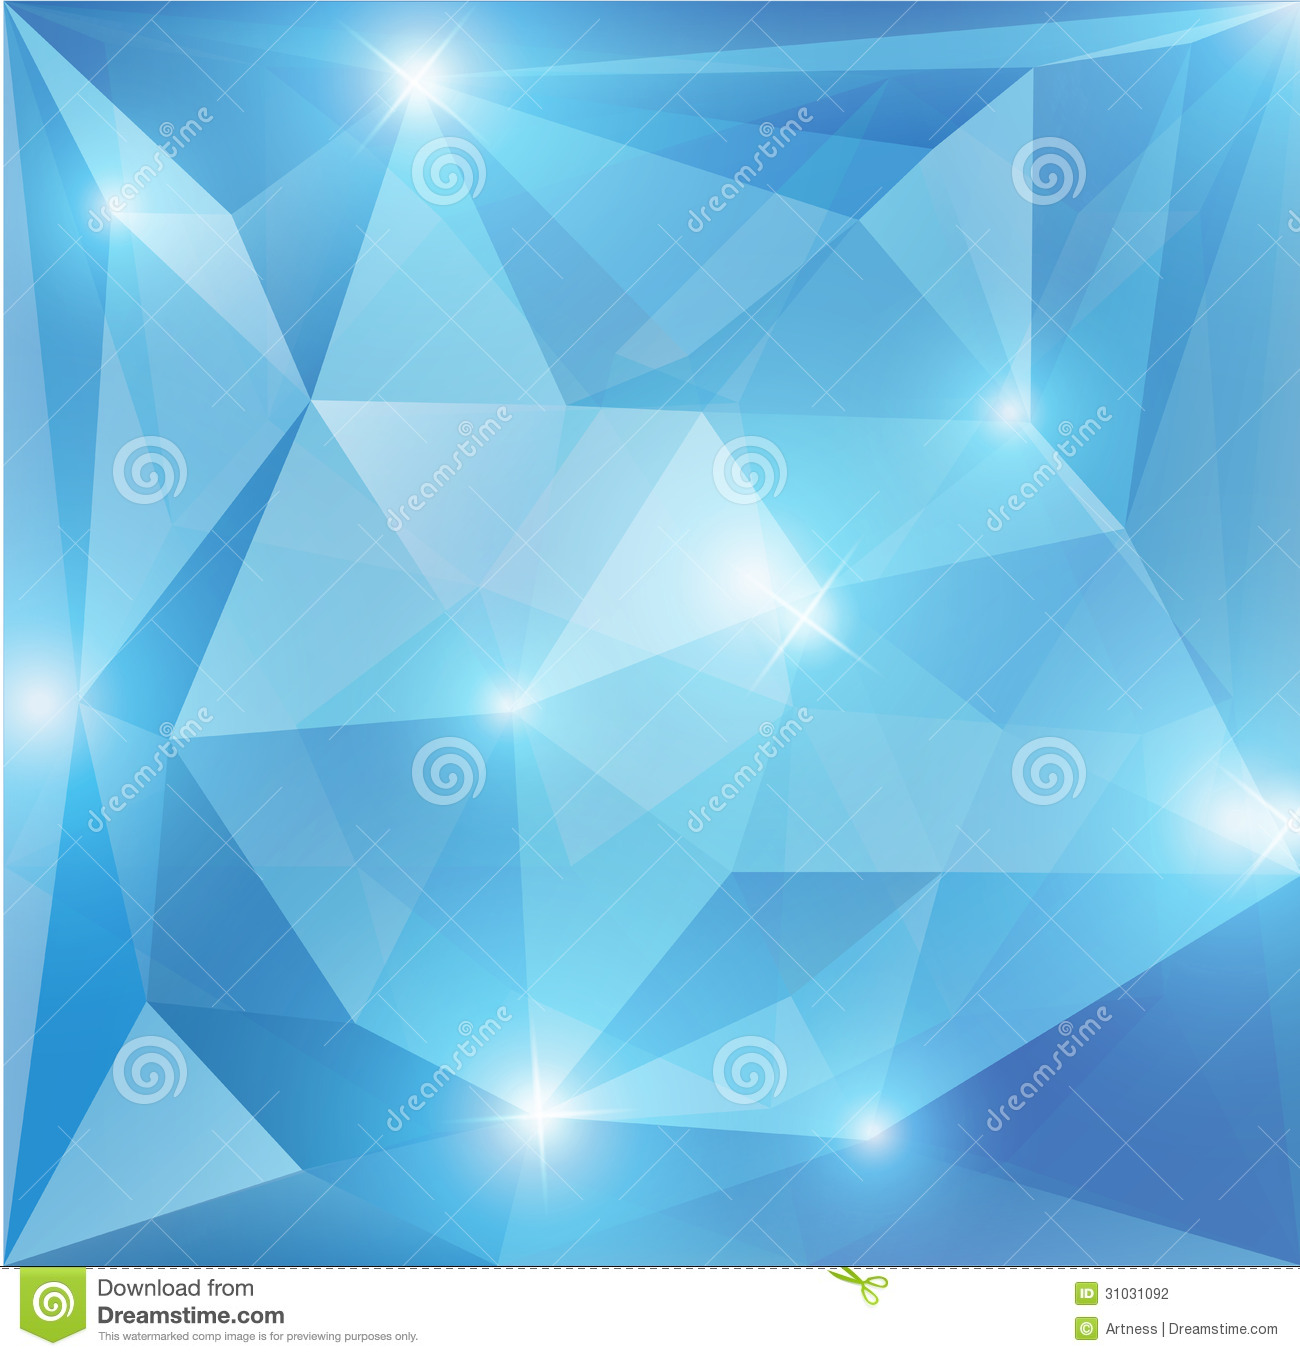 Blue Abstract Geometric Shape